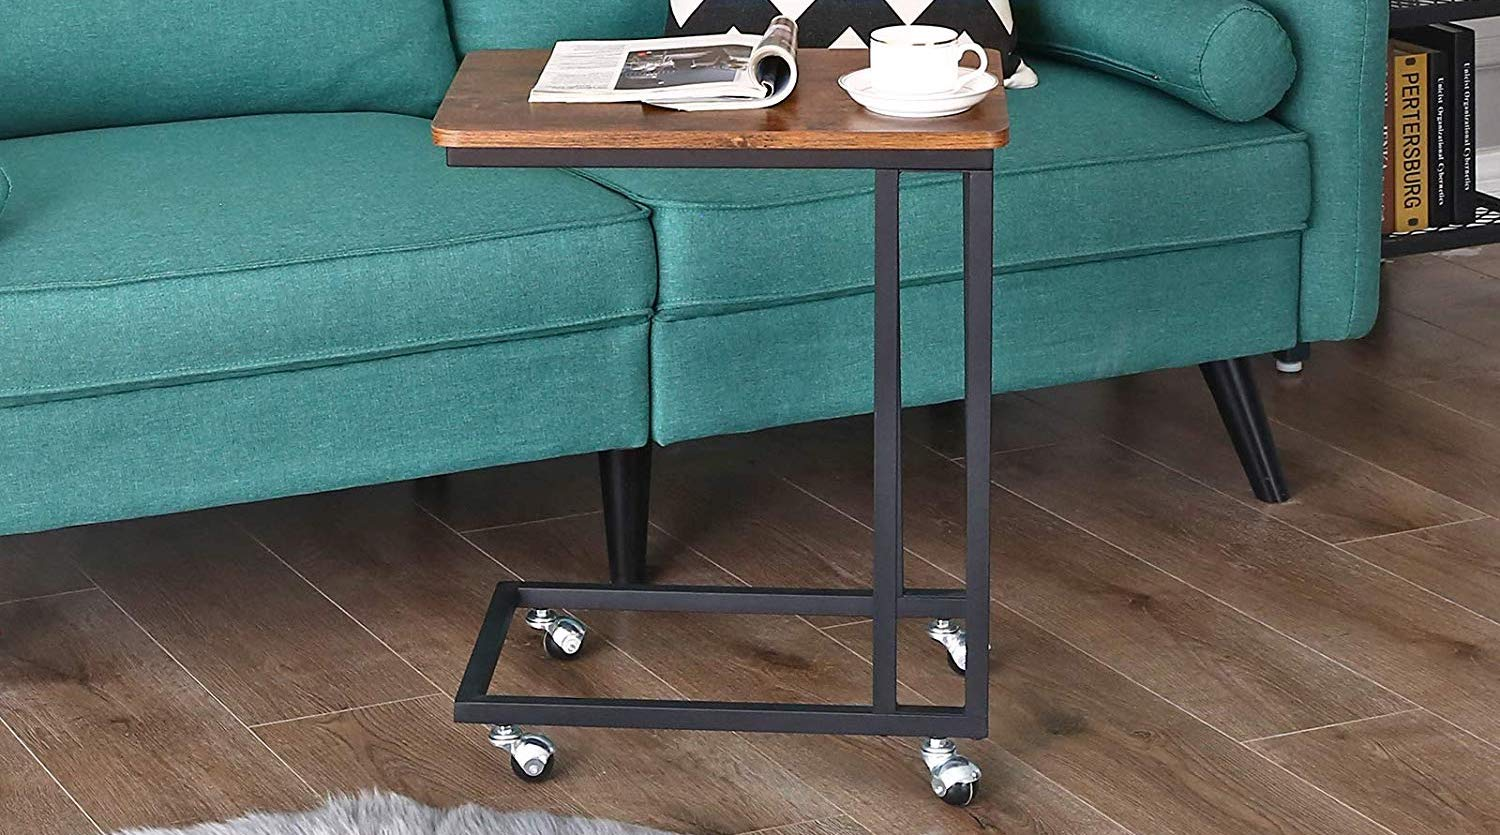 Top 10 Best C Shaped Tables In 2020 Reviews Buyer S Guide